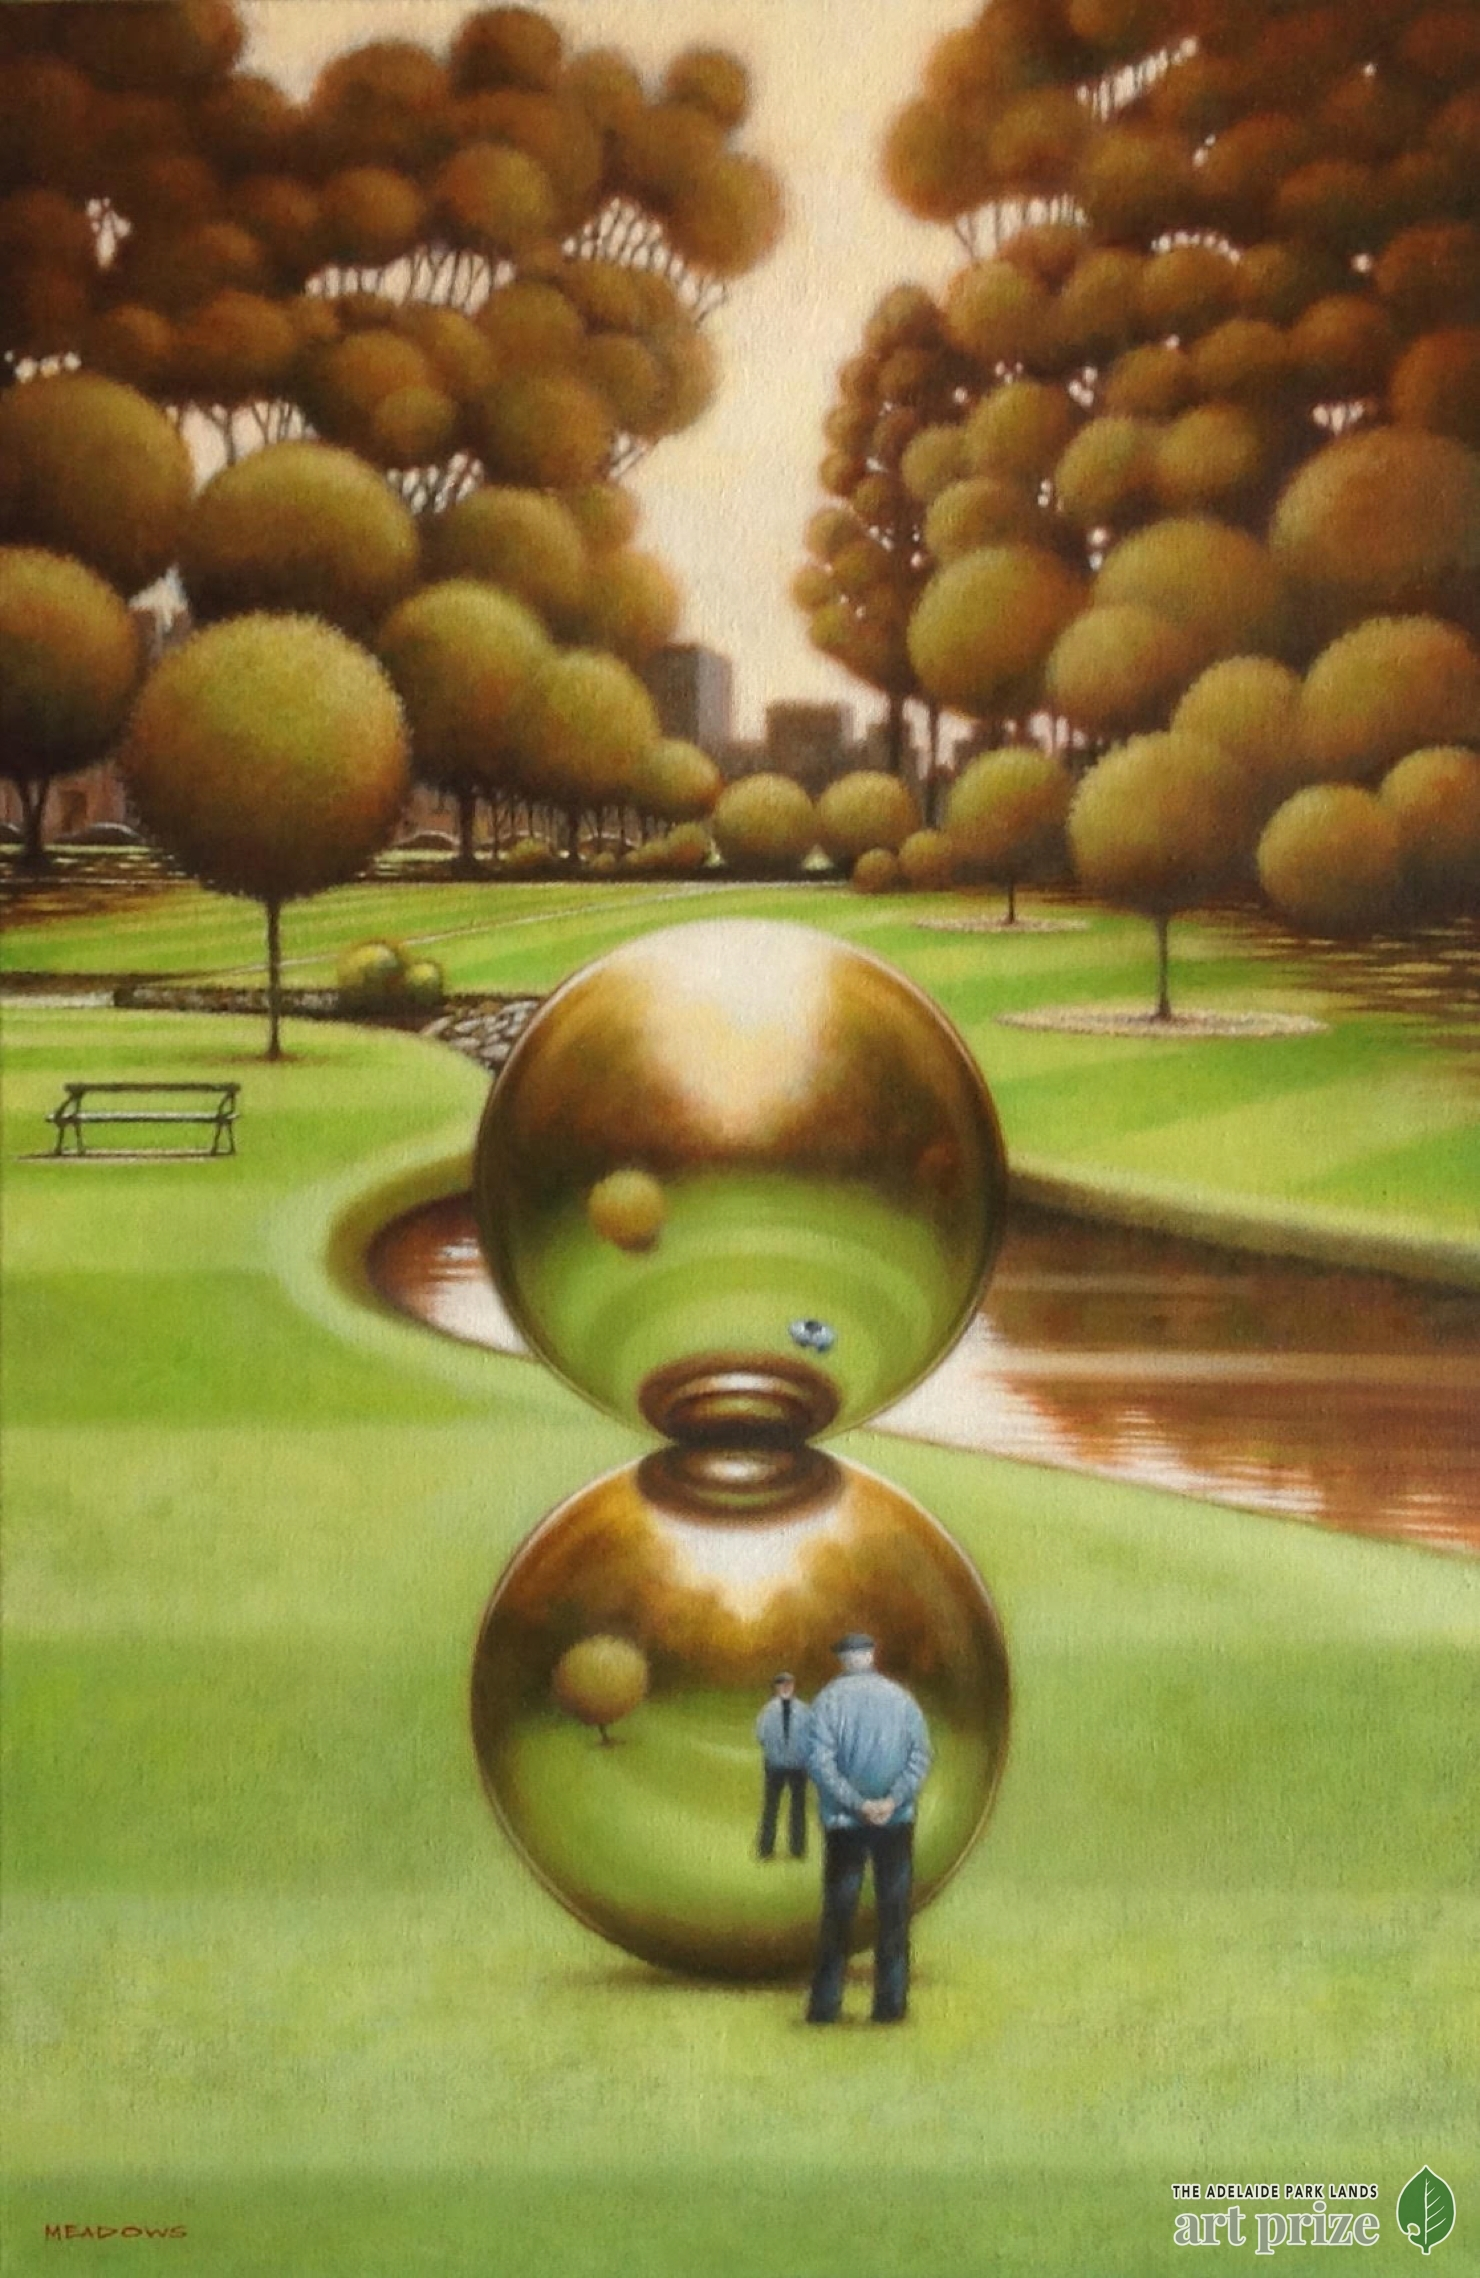 "$20,000 first prize winner of the 2018 Park Lands Art Prize - Christopher Meadows  ""Spheres and Reflections""  - oil on canvas"